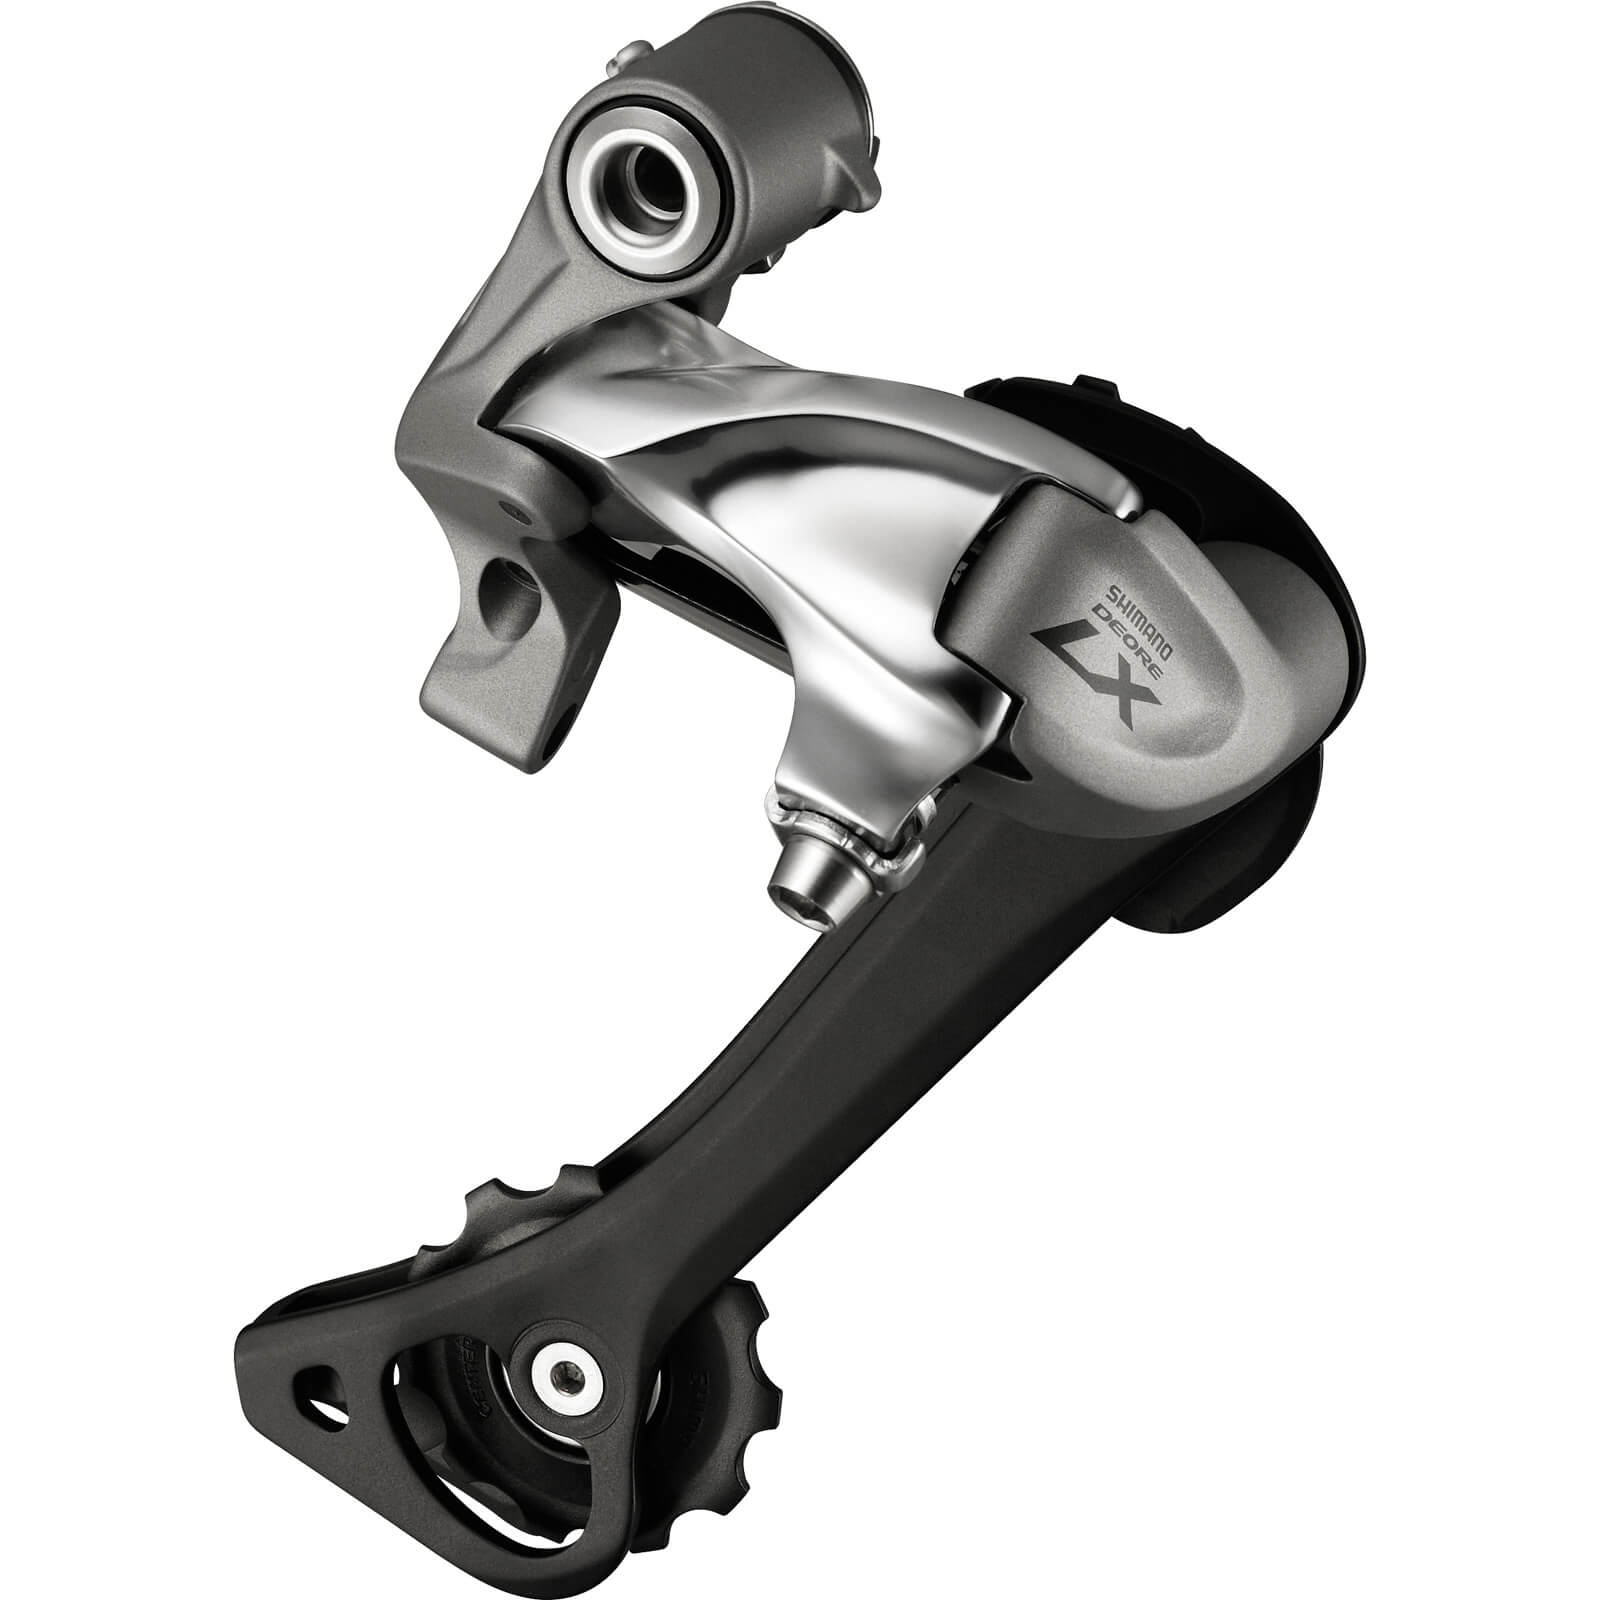 Shimano RD-T670 Deore LX 10-Speed Rear Derailleur - SGS - Top Normal - Silver